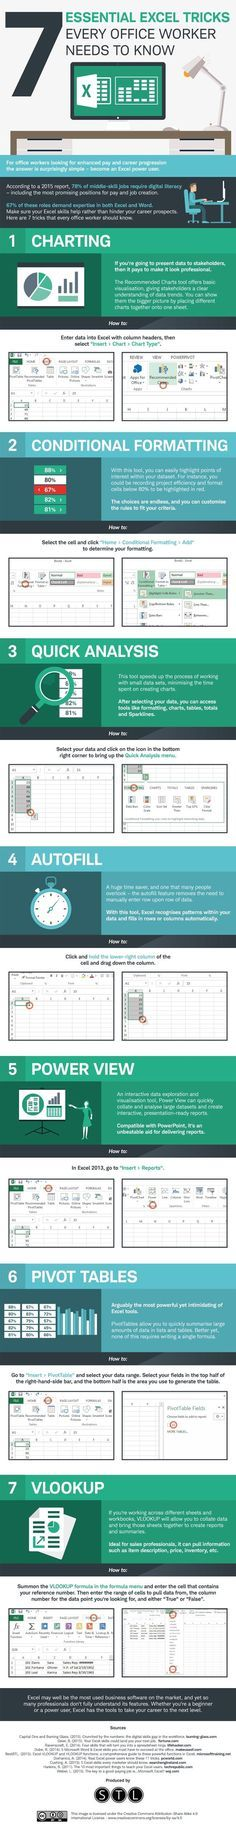 36 best Microsoft Excel Tips, Tricks and Features images on